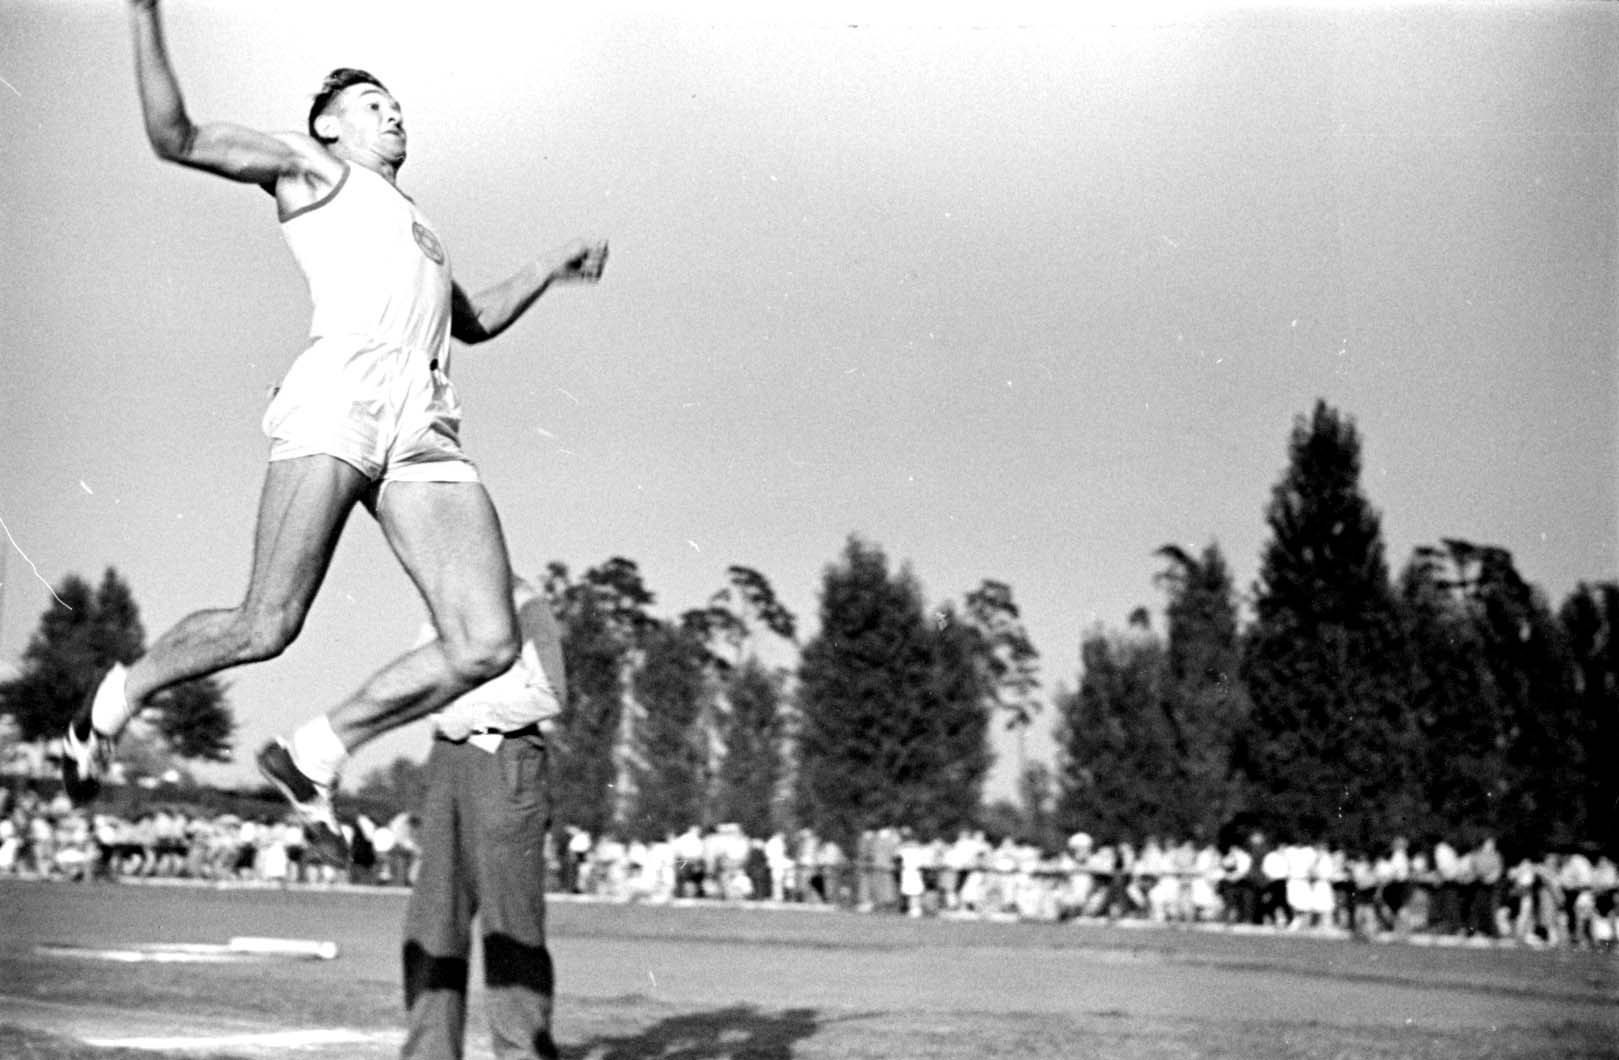 Germany, August 1937, A long jump event at a Maccabi track and field competition